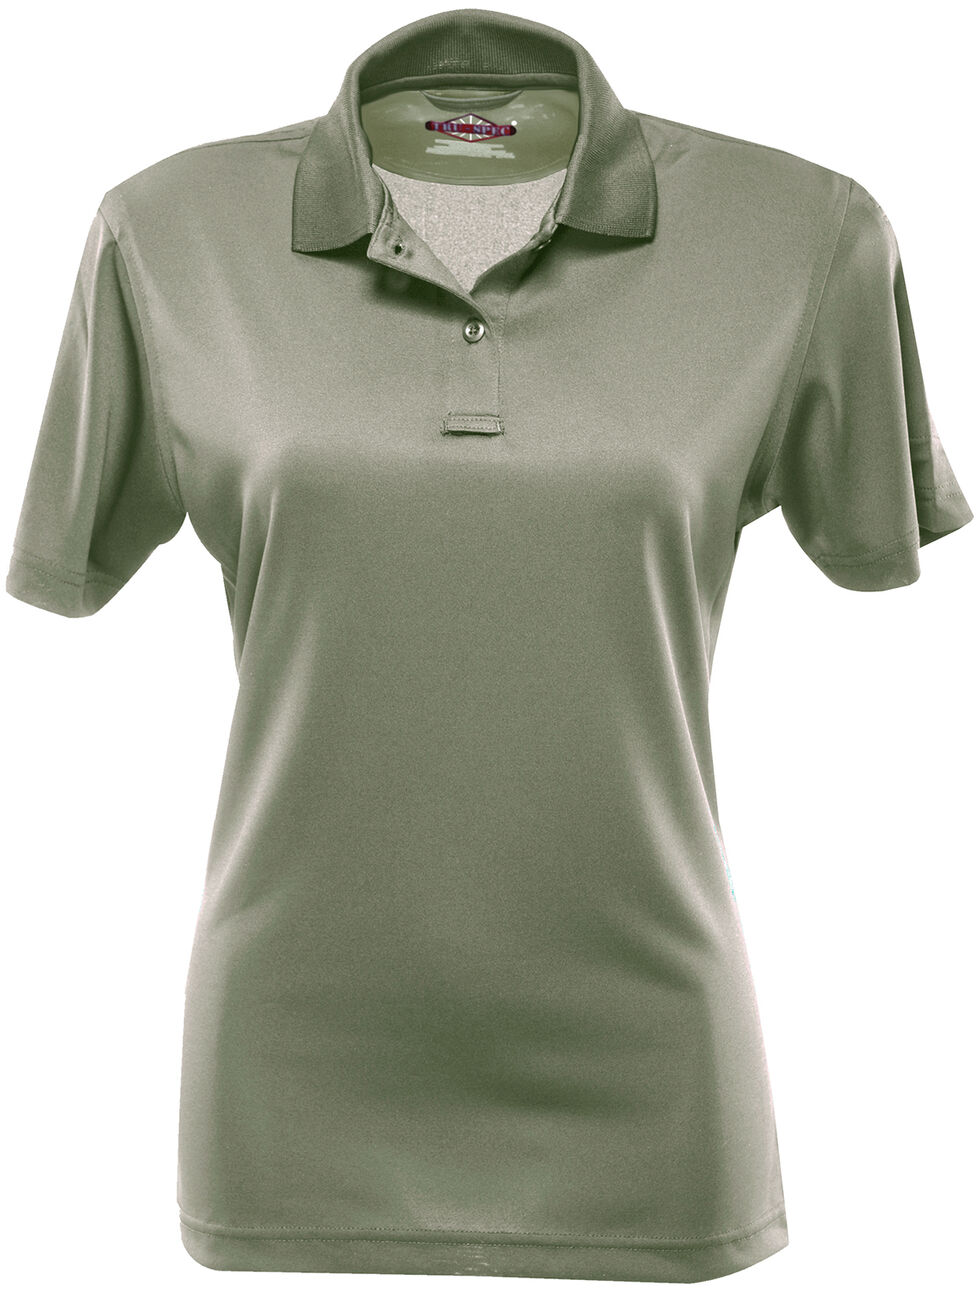 Tru-Spec Women's 24-7 Short Sleeve Performance Polo Shirt - Extra Large Sizes, Green, hi-res